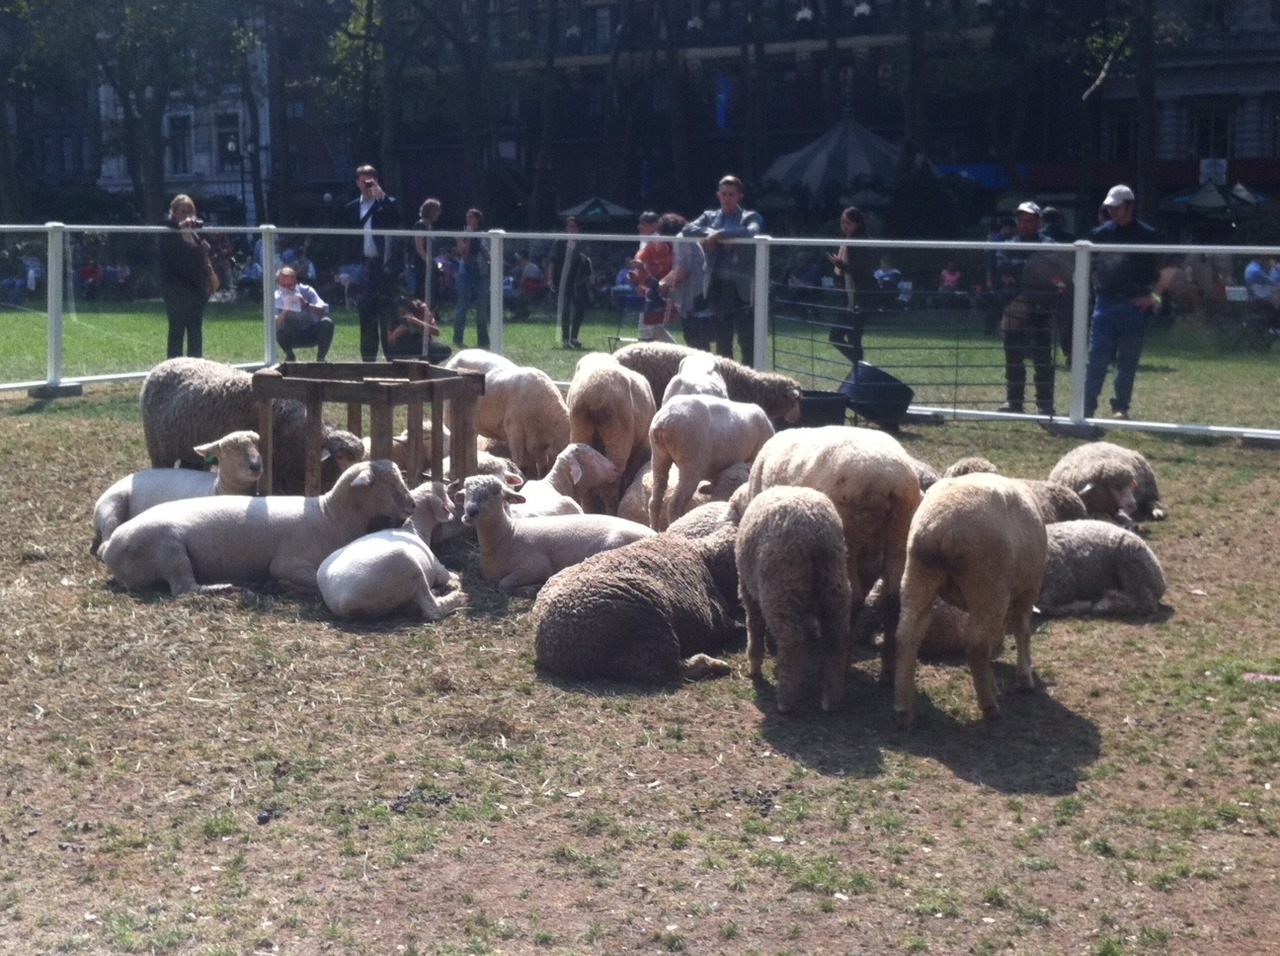 Sheeply Chic!  This past week Bryant Park was taken over by what else, SHEEP! In an effort bring more awareness to The Campaign For Wool, Gensler provided creative support for the Wool Uncovered event. Aside from education and a fascinating fountain installation it provided a great alternative to the typical lunch break! ~amberlee